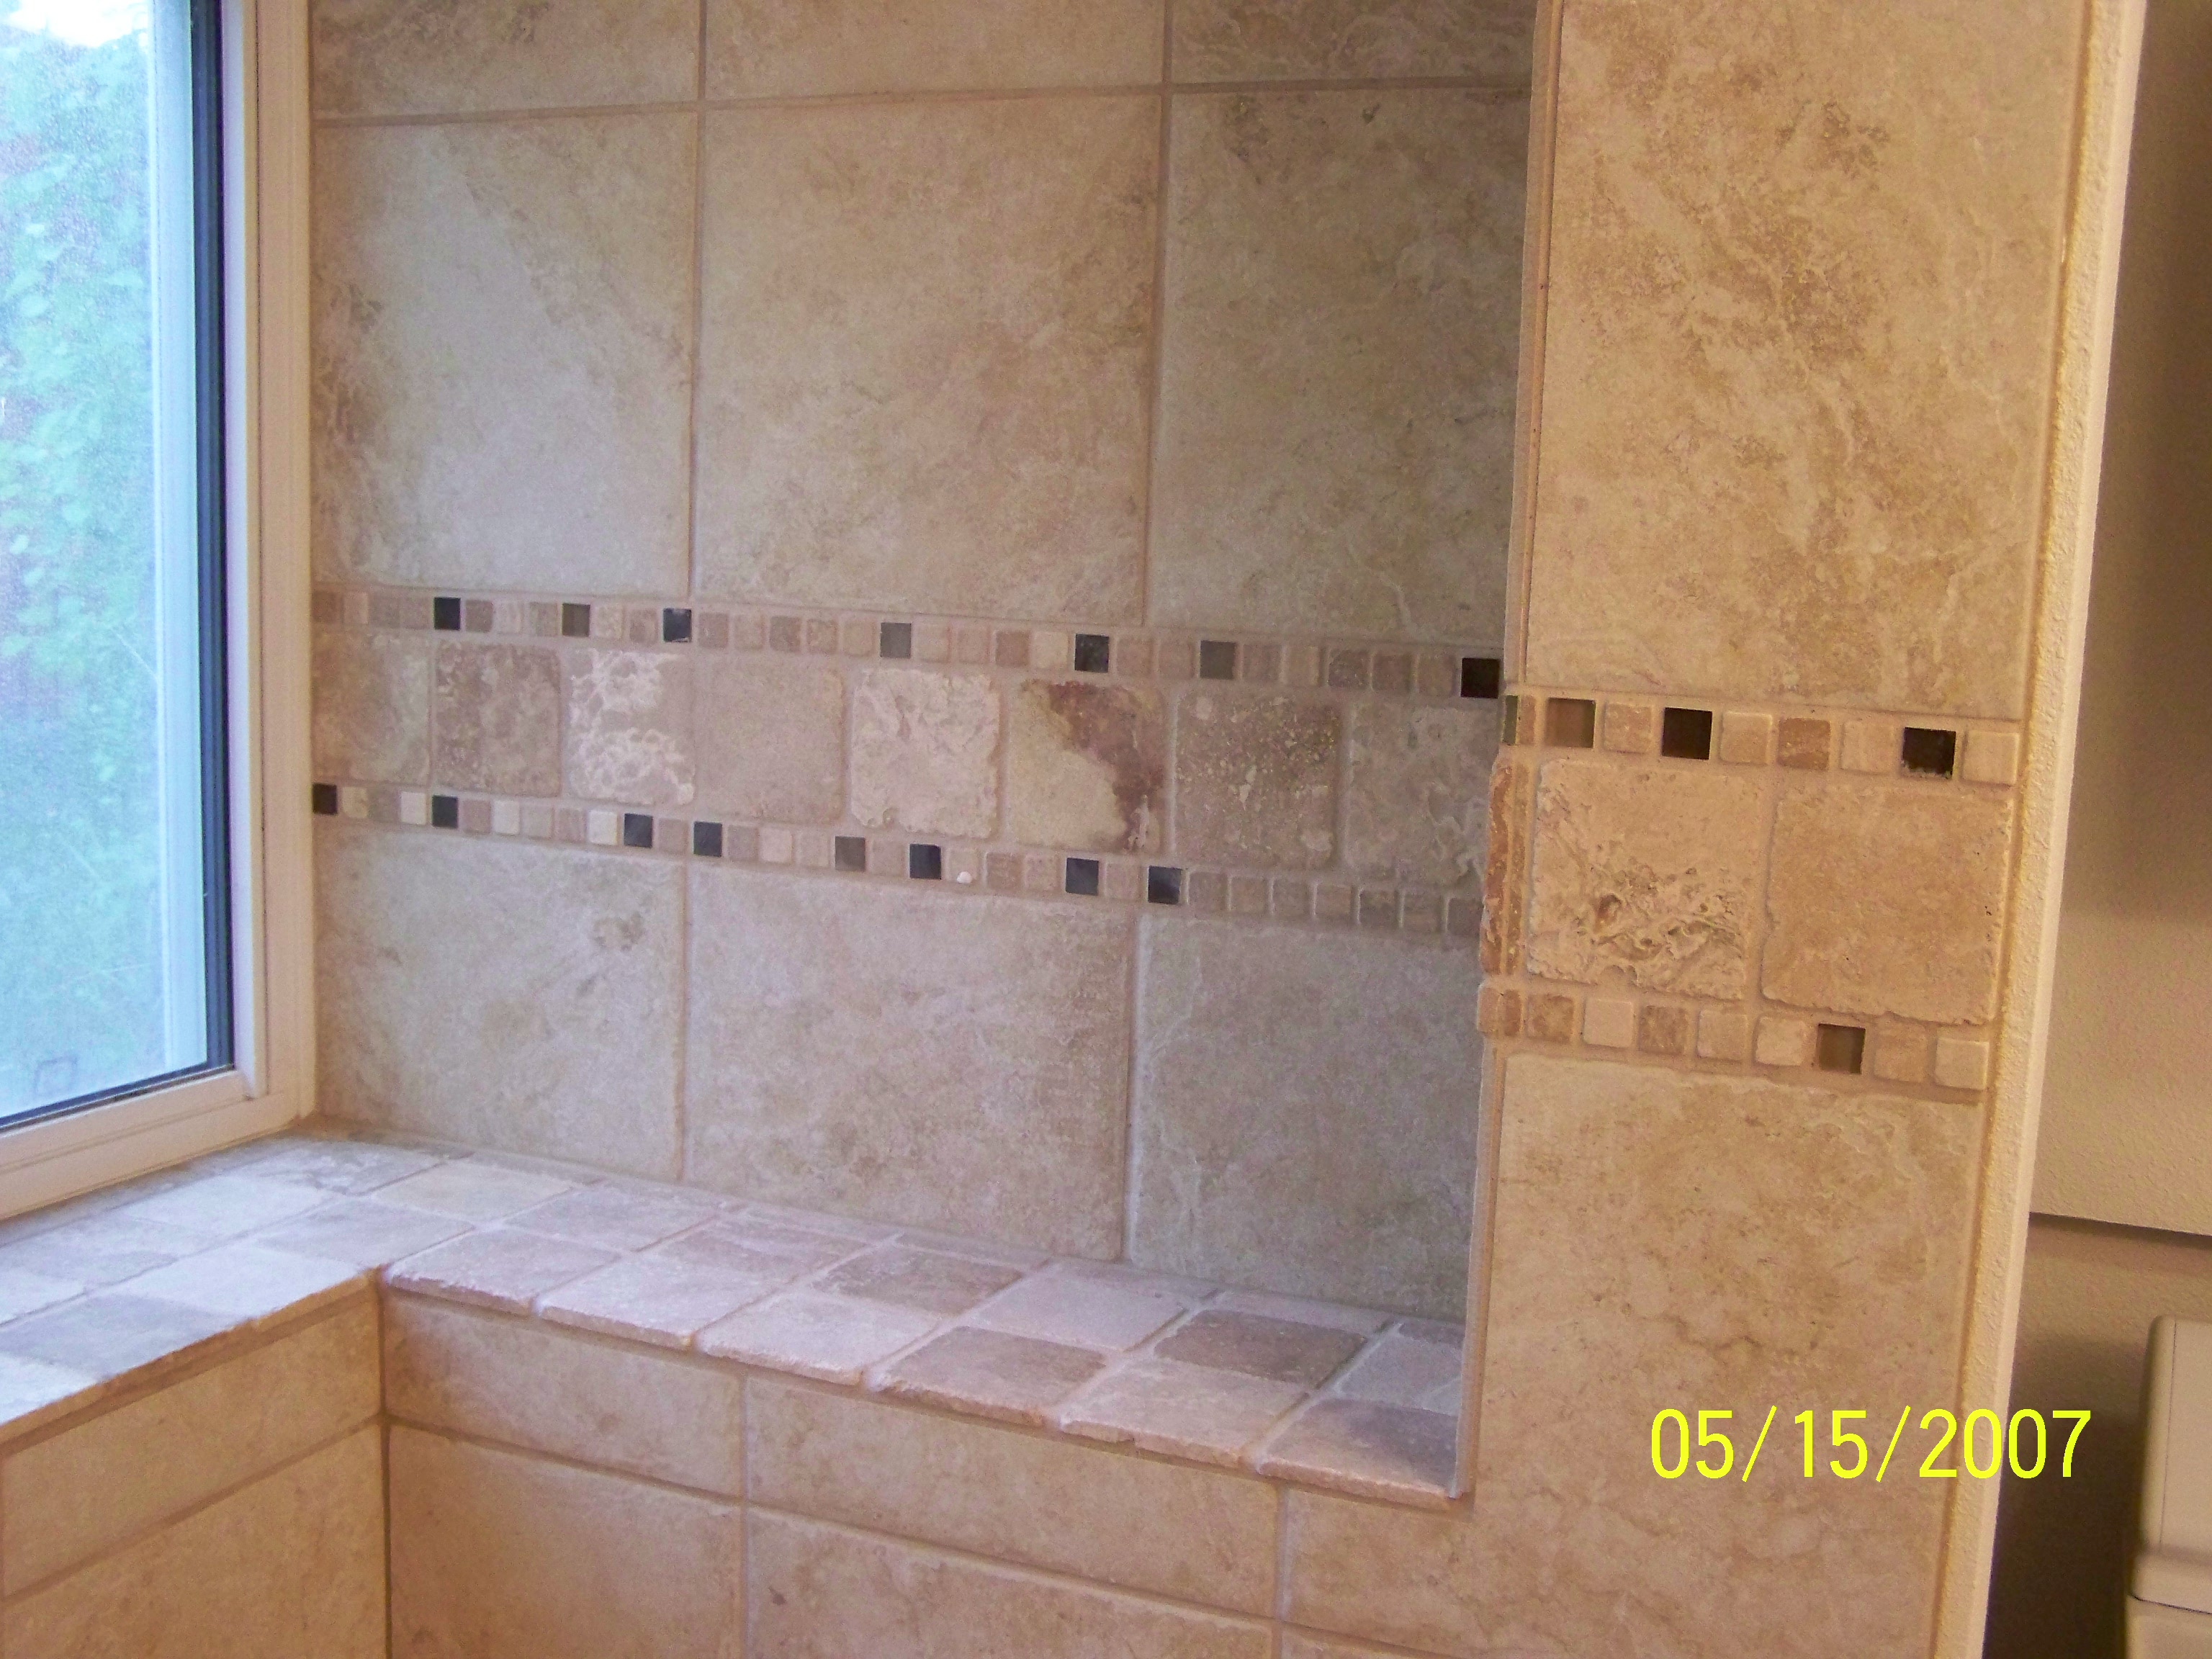 TUB SURROUNDS - SUBWAY TILE BATHTUB SURROUND